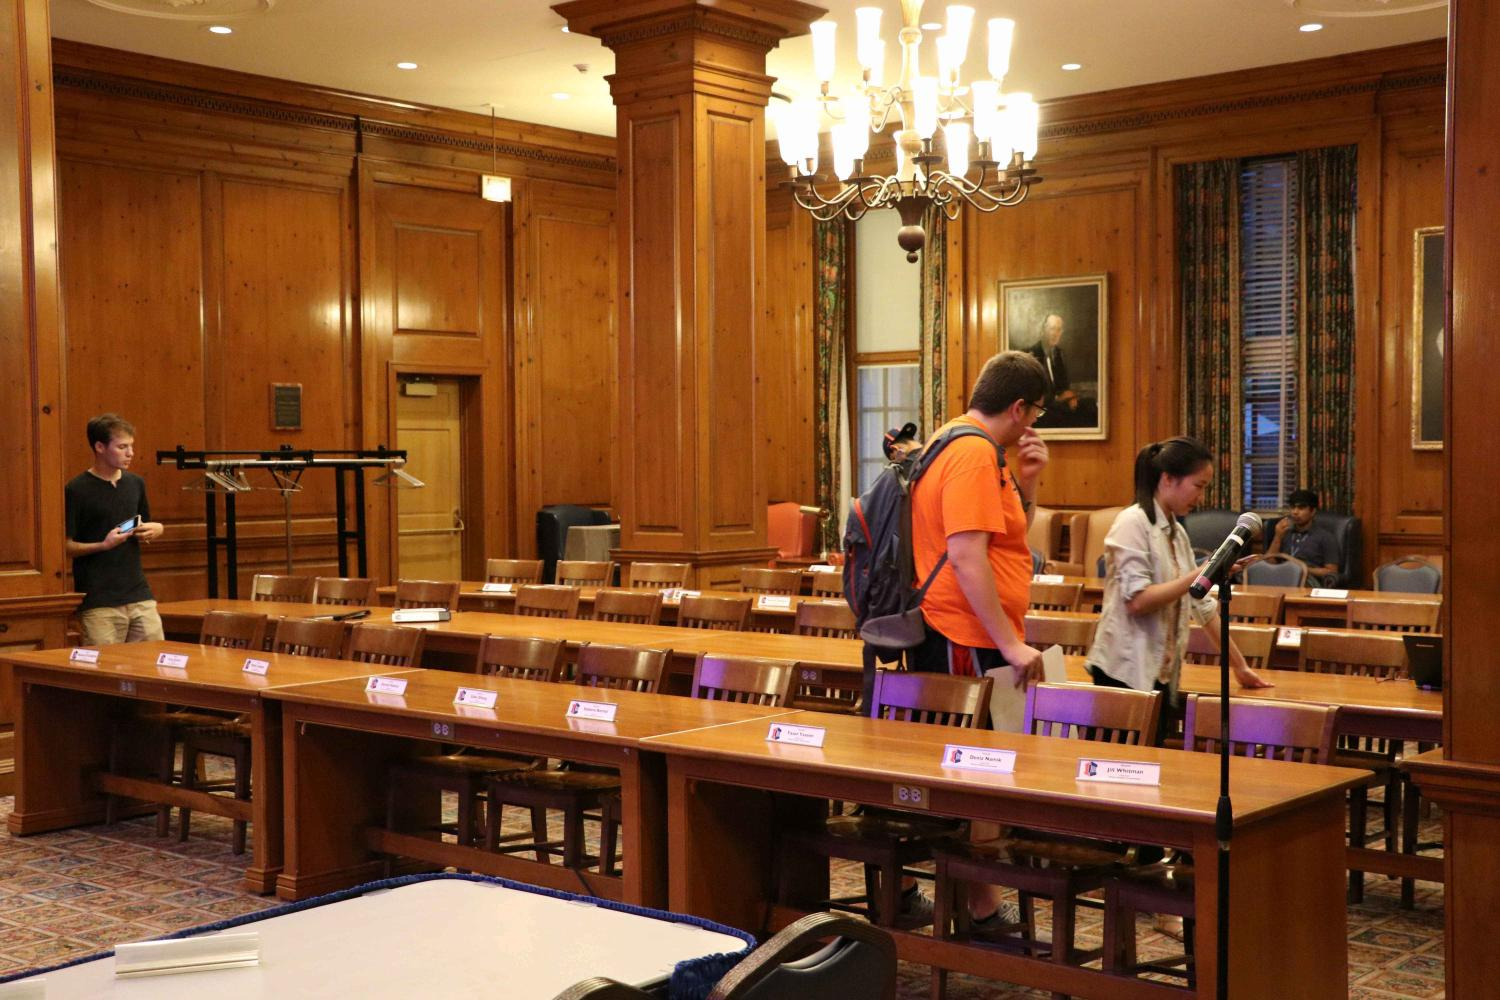 Students setting up name plates for each student senator prior to the meeting.